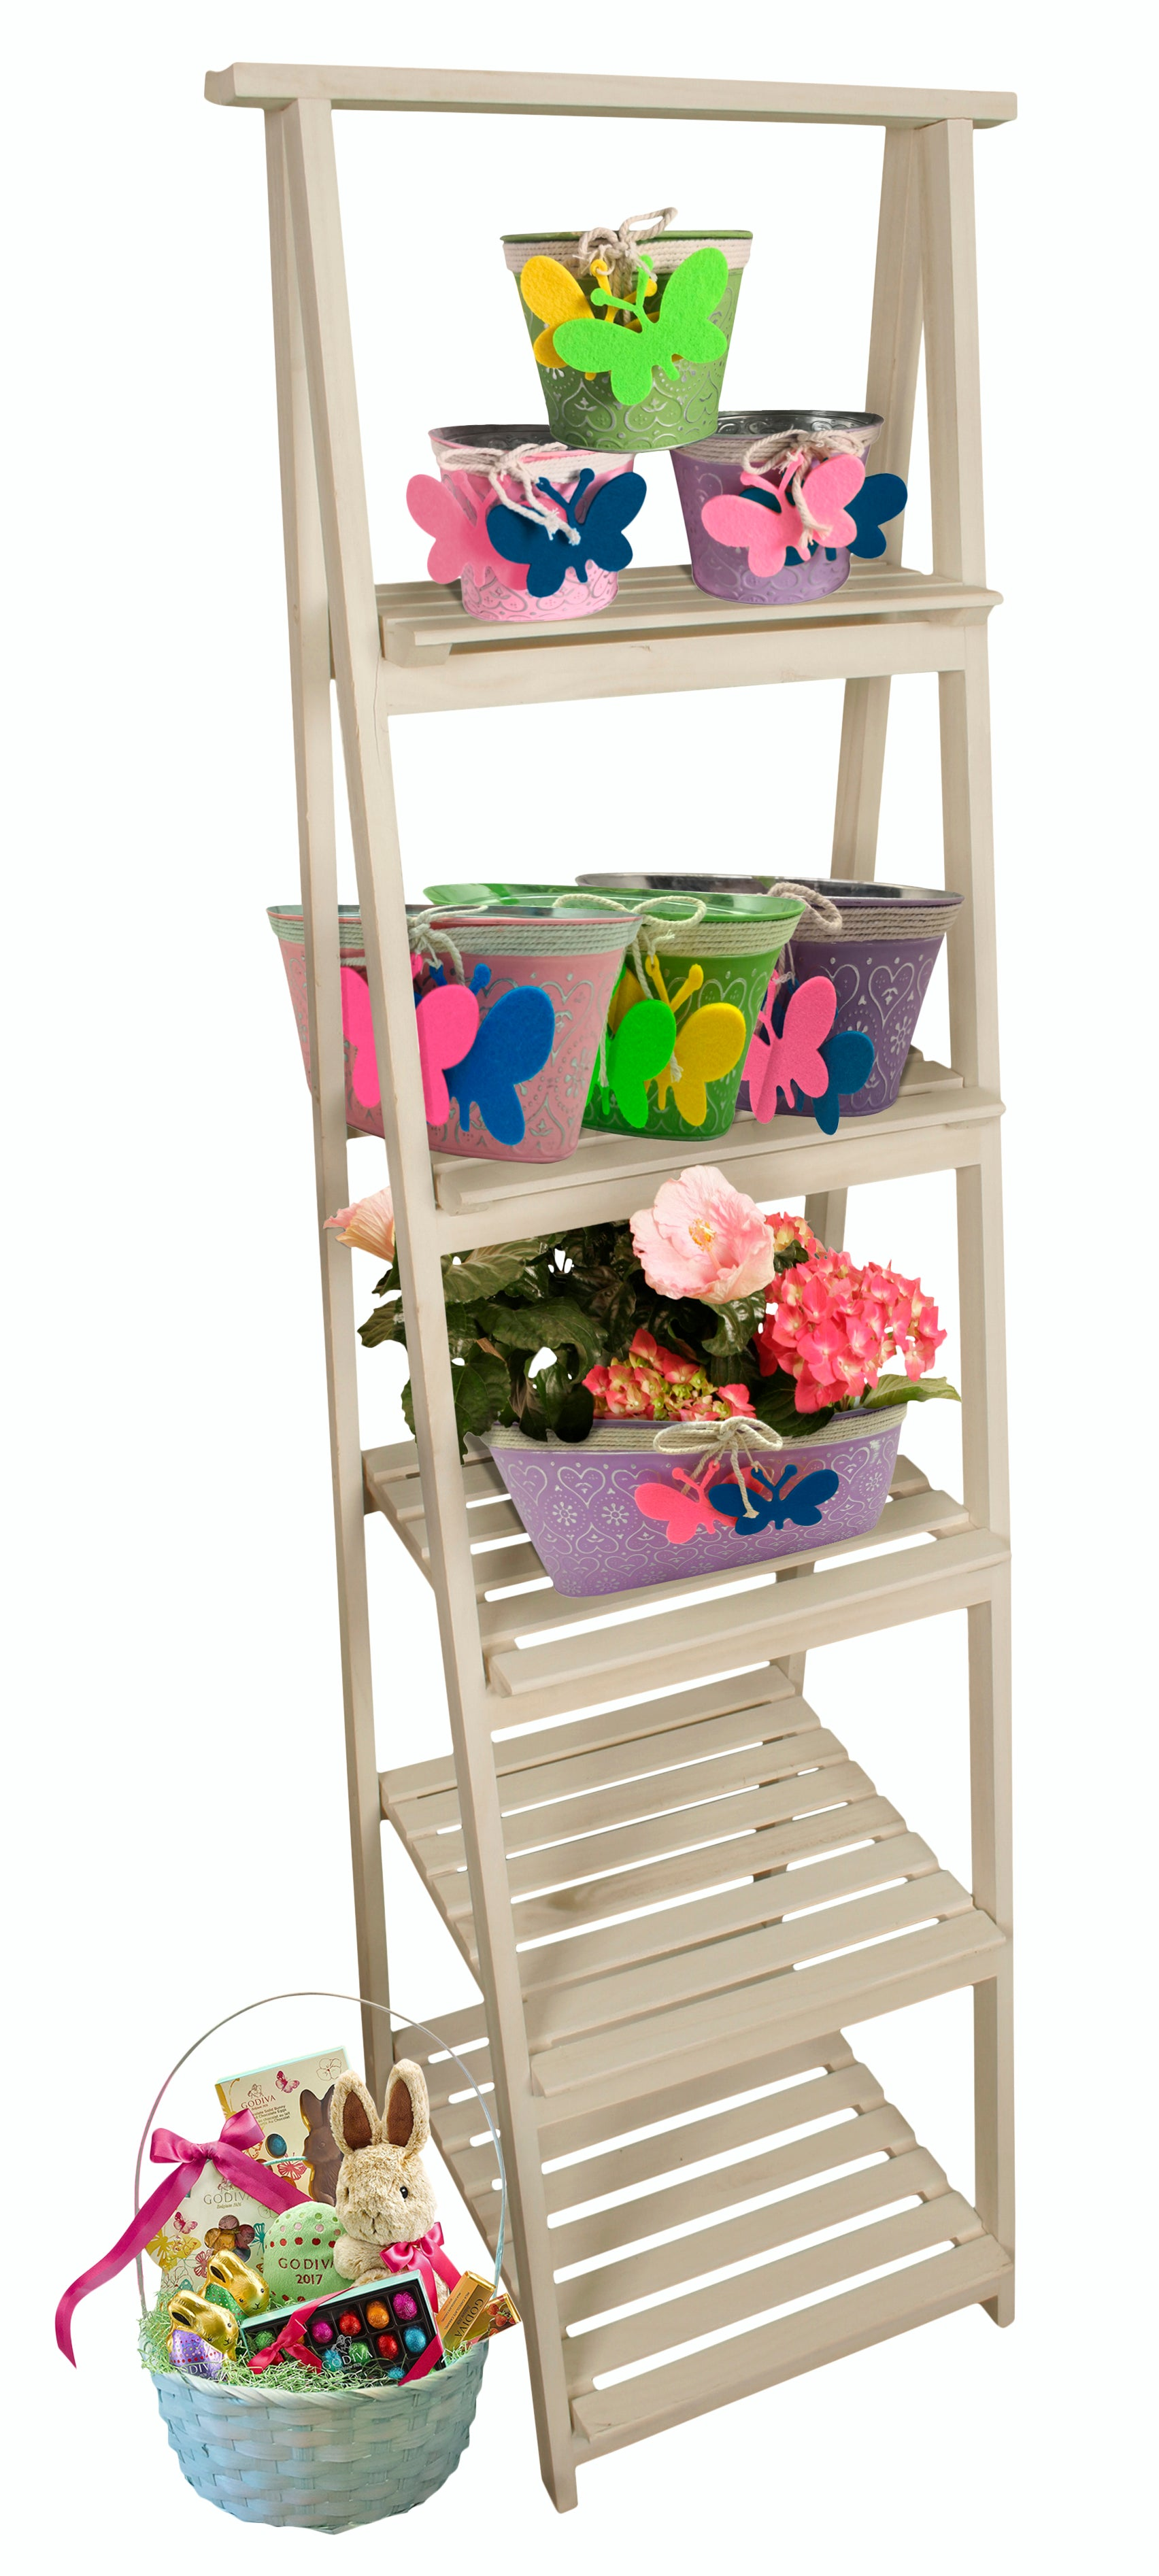 Display White Wash Gradient Ladder w/ 5 Shelves-Wald Imports